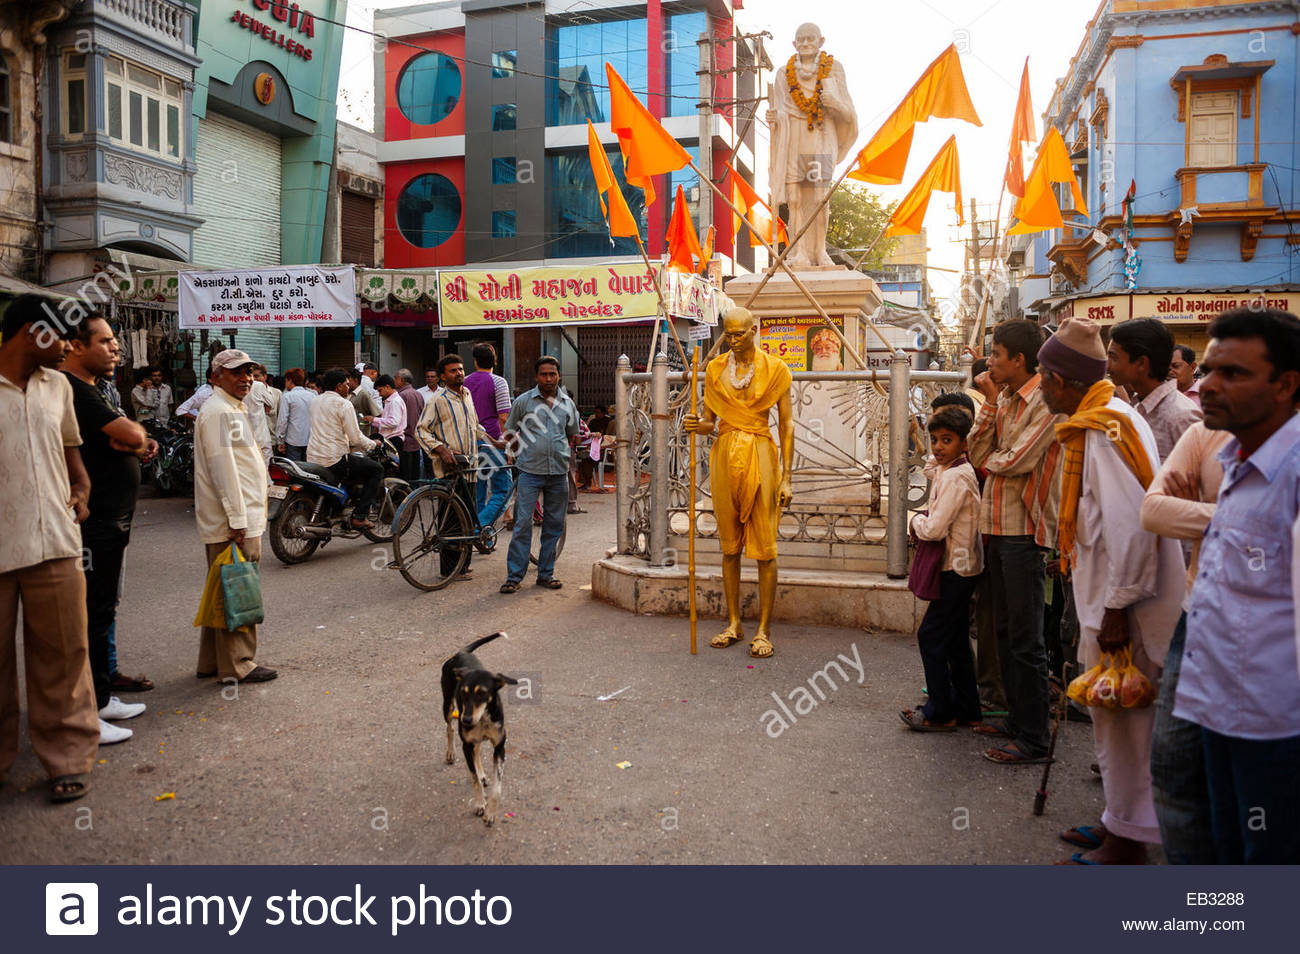 A street performer, Golden Gandhi, appears next to a statue of Mahatma Gandhi. - Stock Image